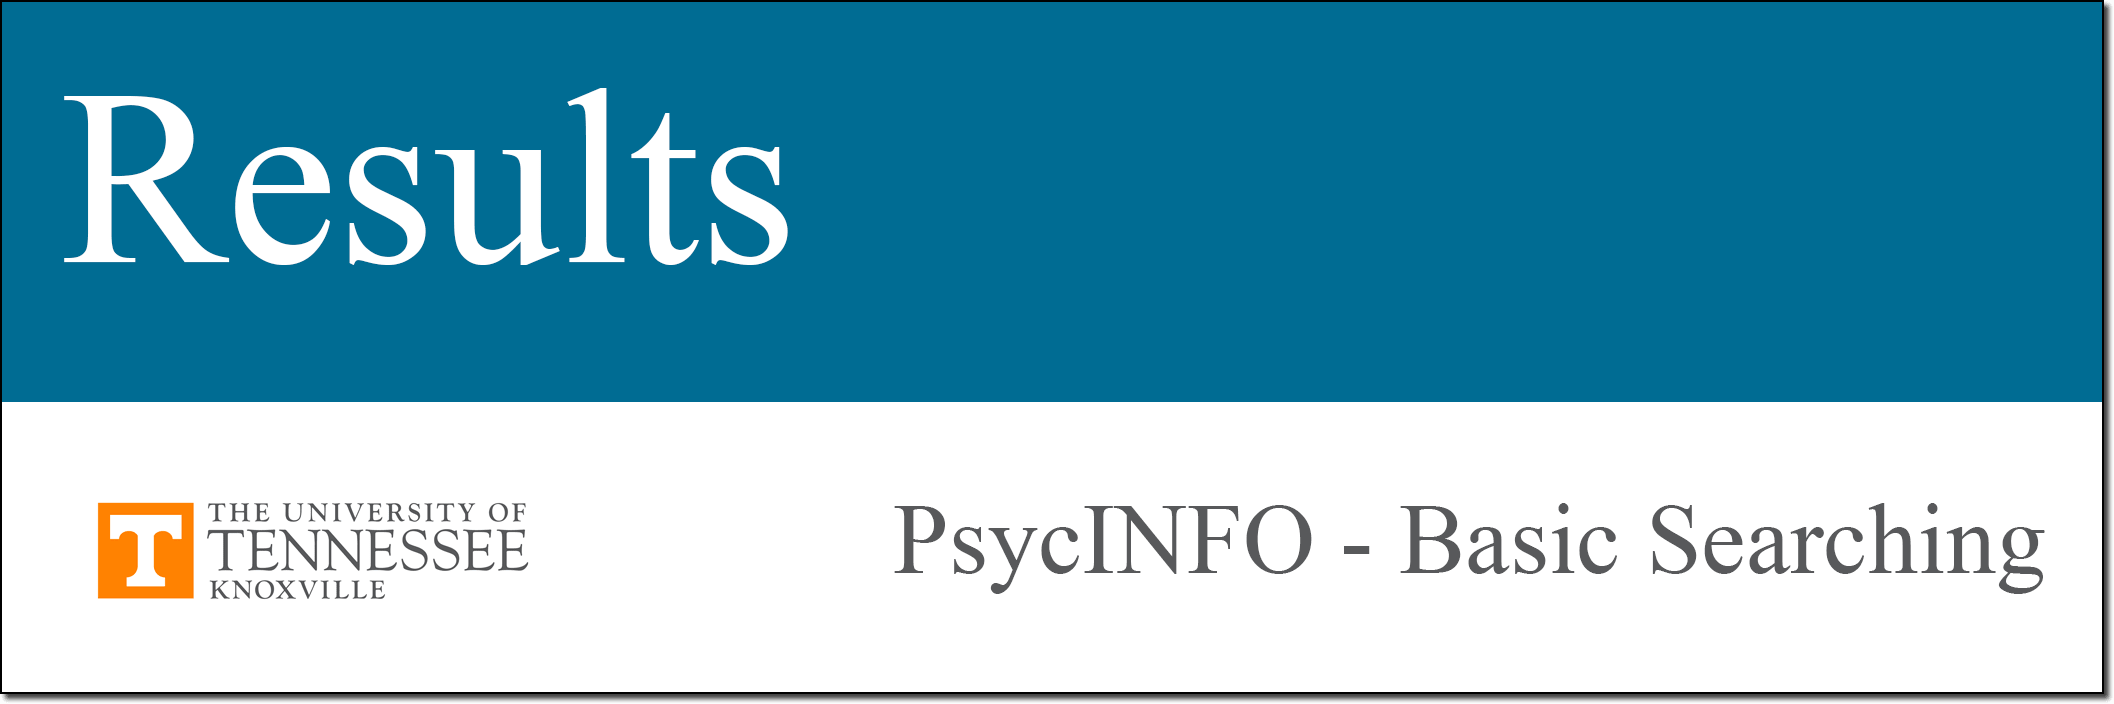 PsycINFO Tutorial Results link.